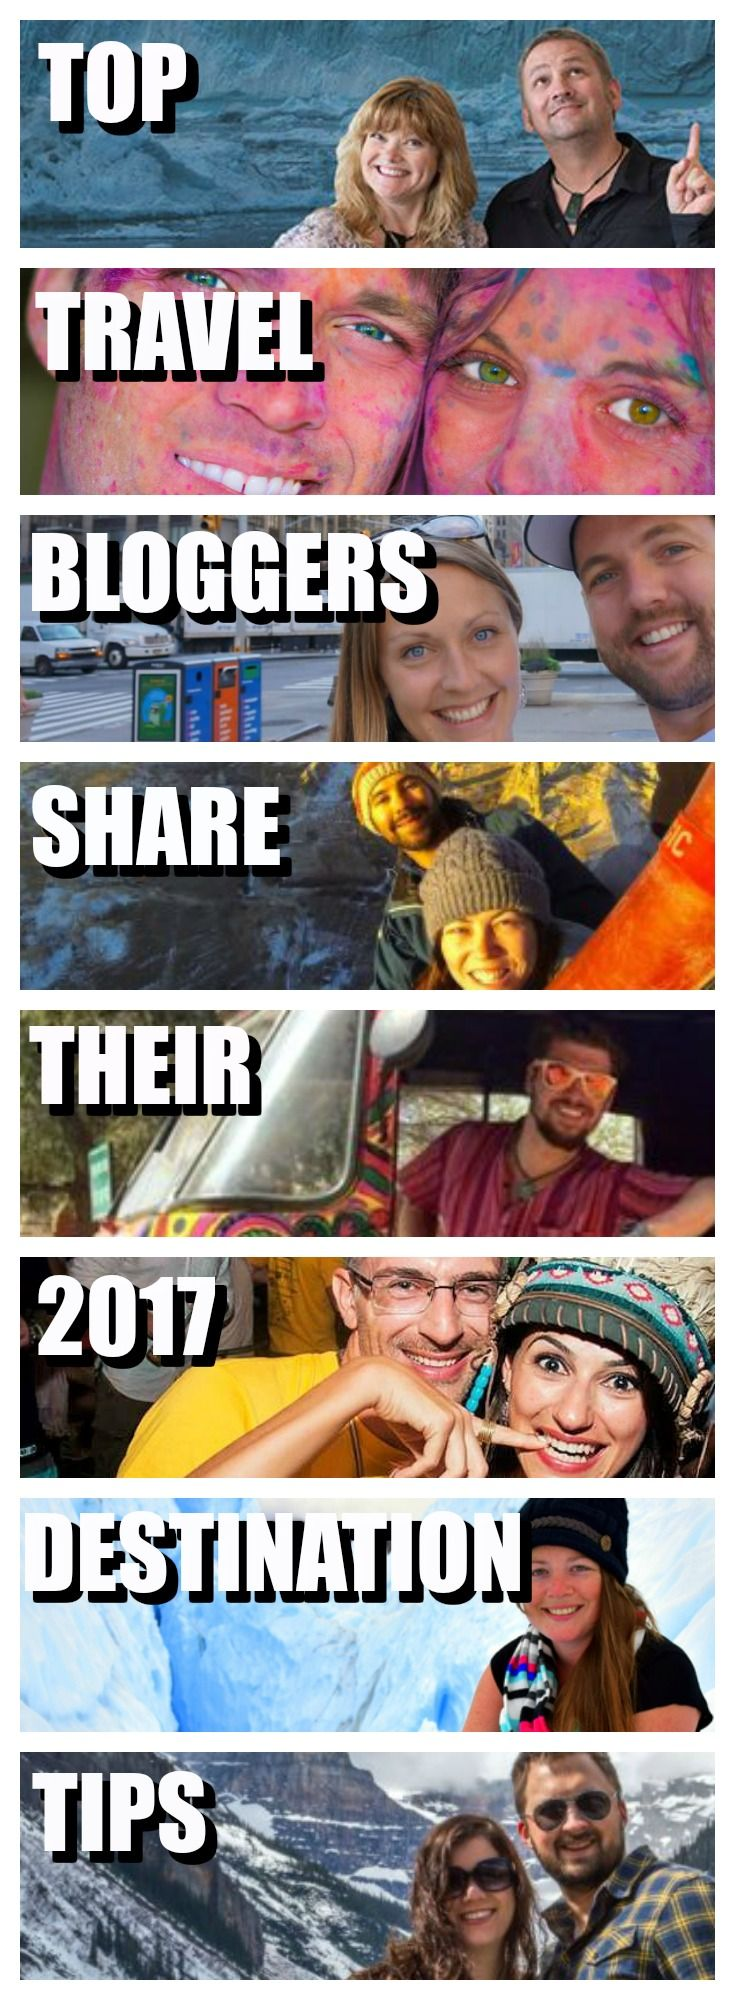 Fuel your 2017 wanderlust by destination tips from the world's top travel bloggers including The Planet D, Goats on the Road, Getting Stamped & Nomadasaurus | Top Travel Bloggers | Where to travel to next | Wanderlust | Best Places to visit | Top destinations | Best Countries to visit | Travel destinations